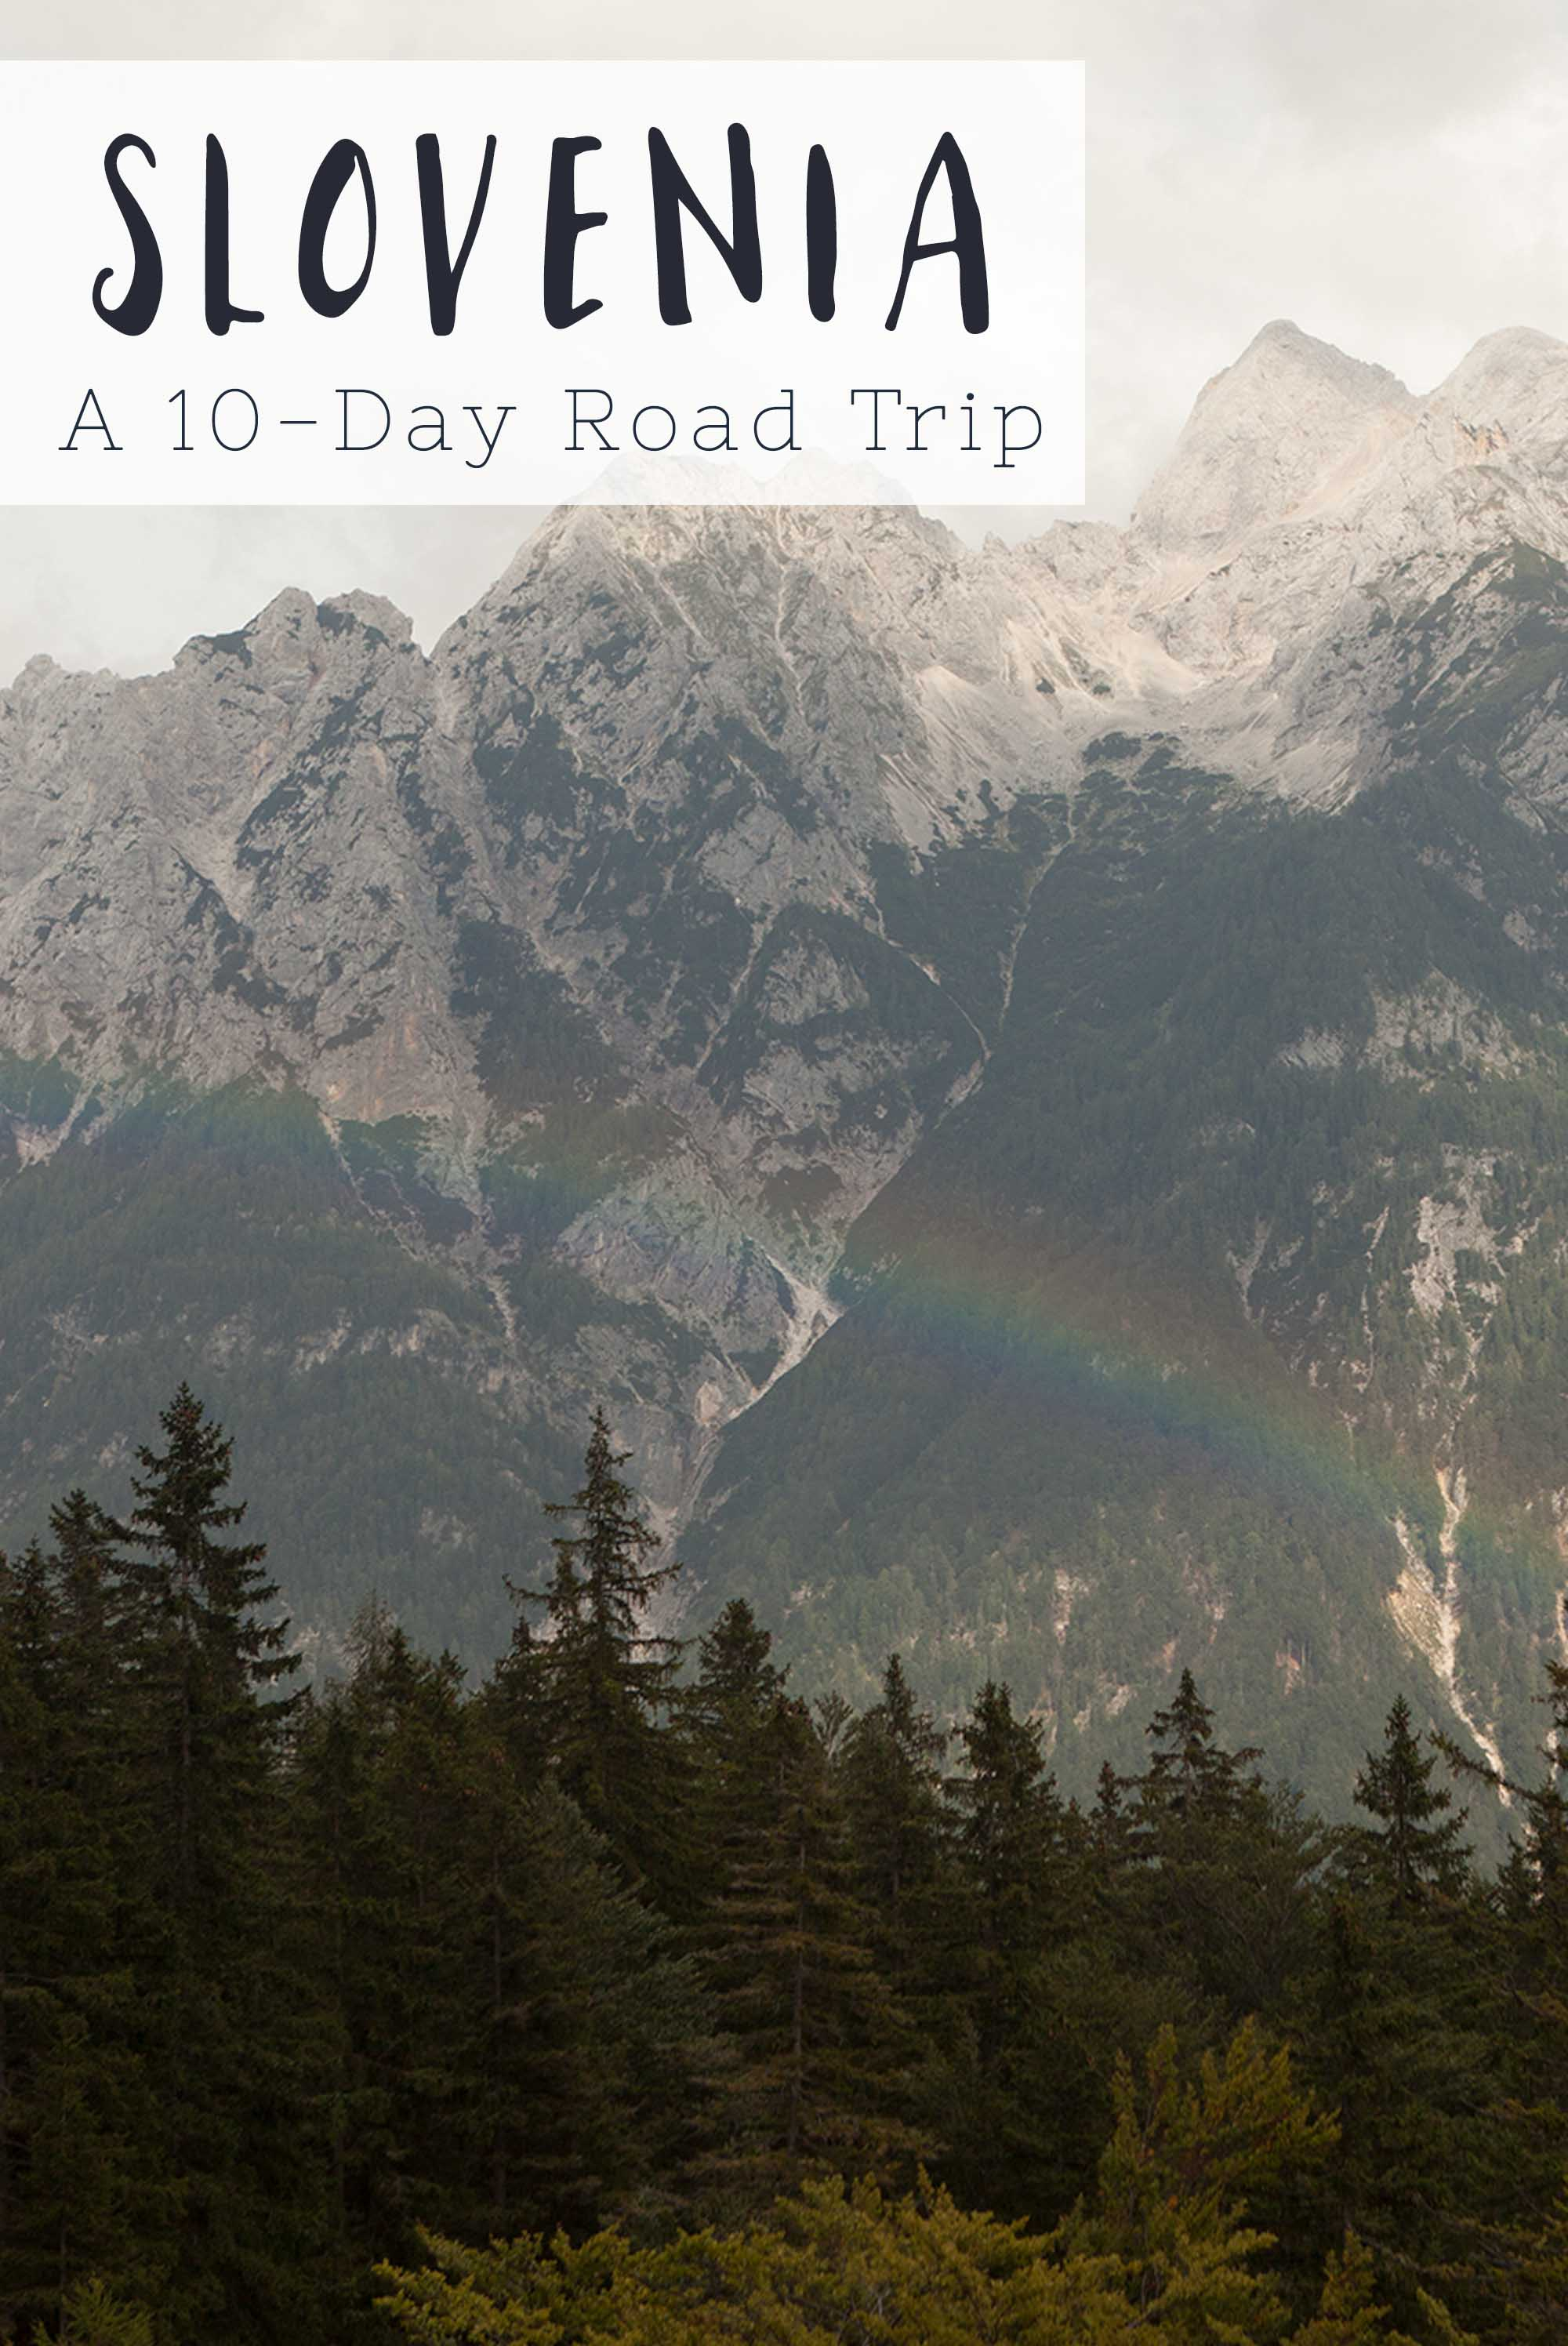 A 10-day road trip in Slovenia